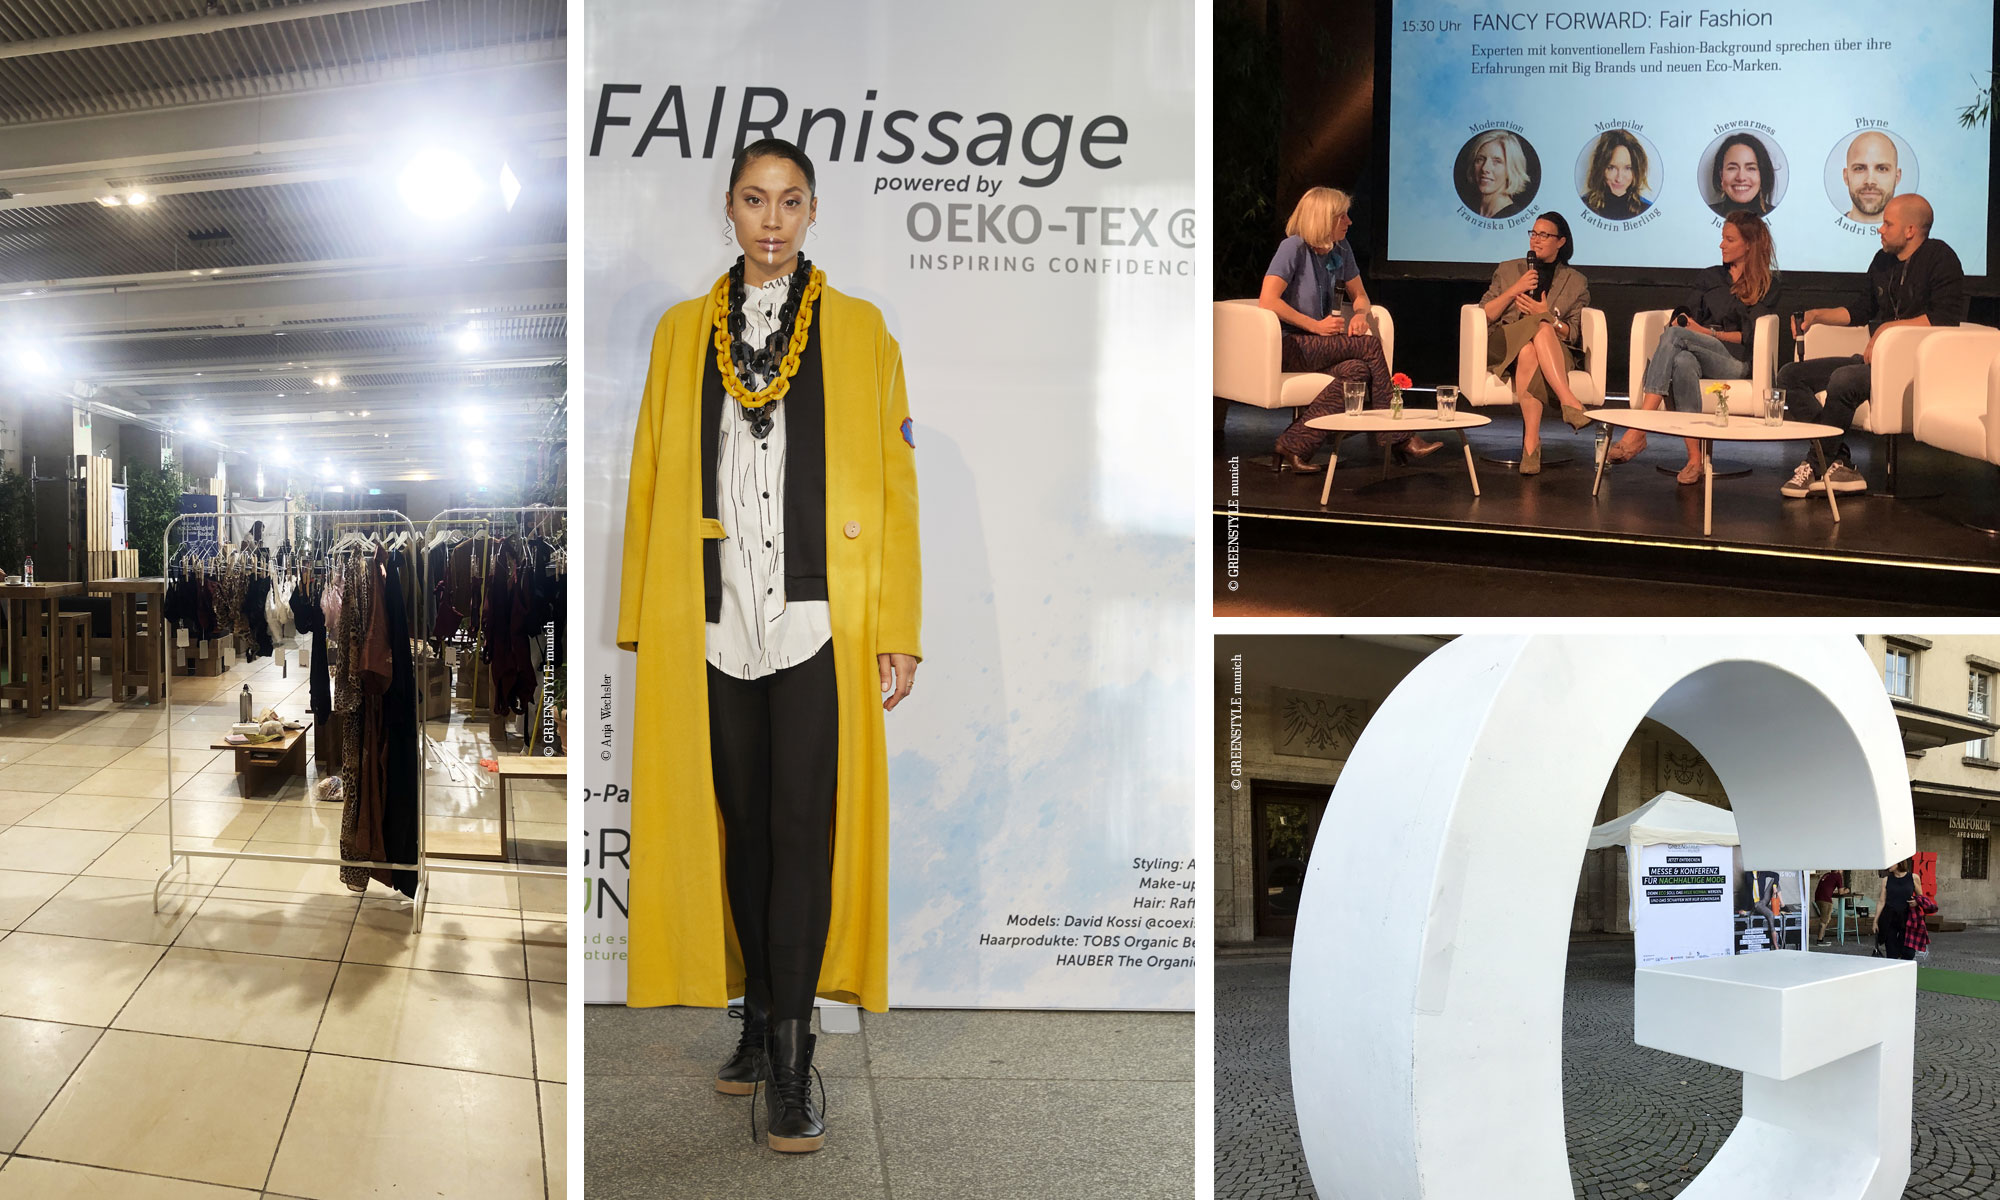 Fair Fashion & Conference